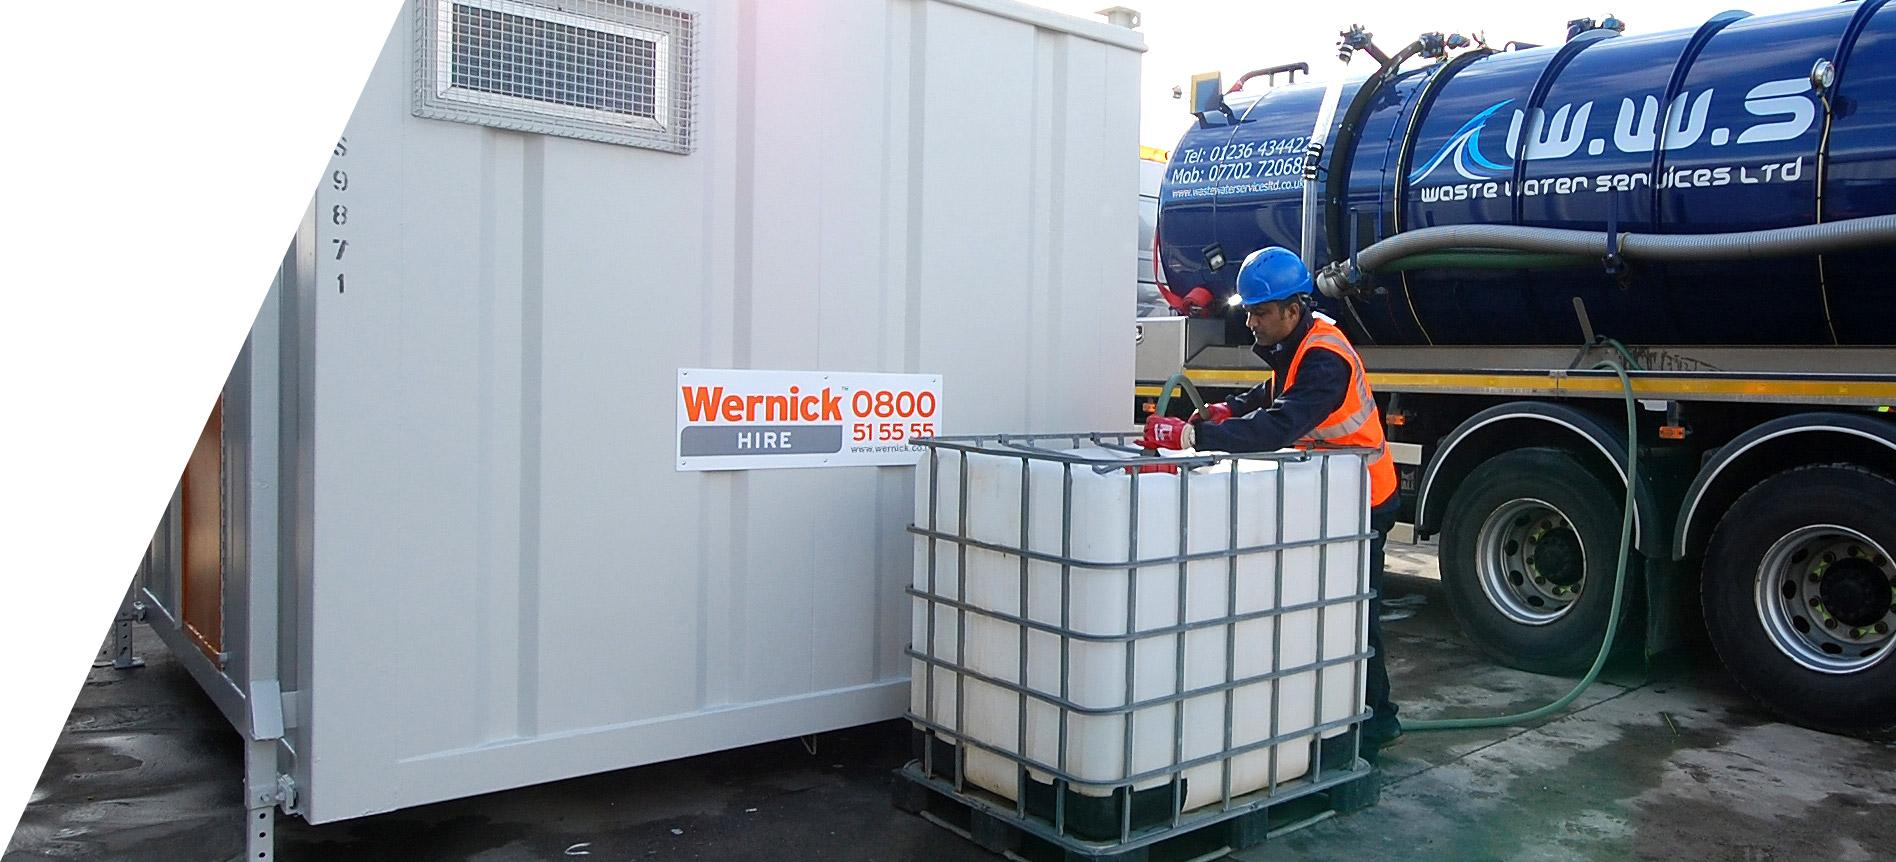 waste water services water bowser hire